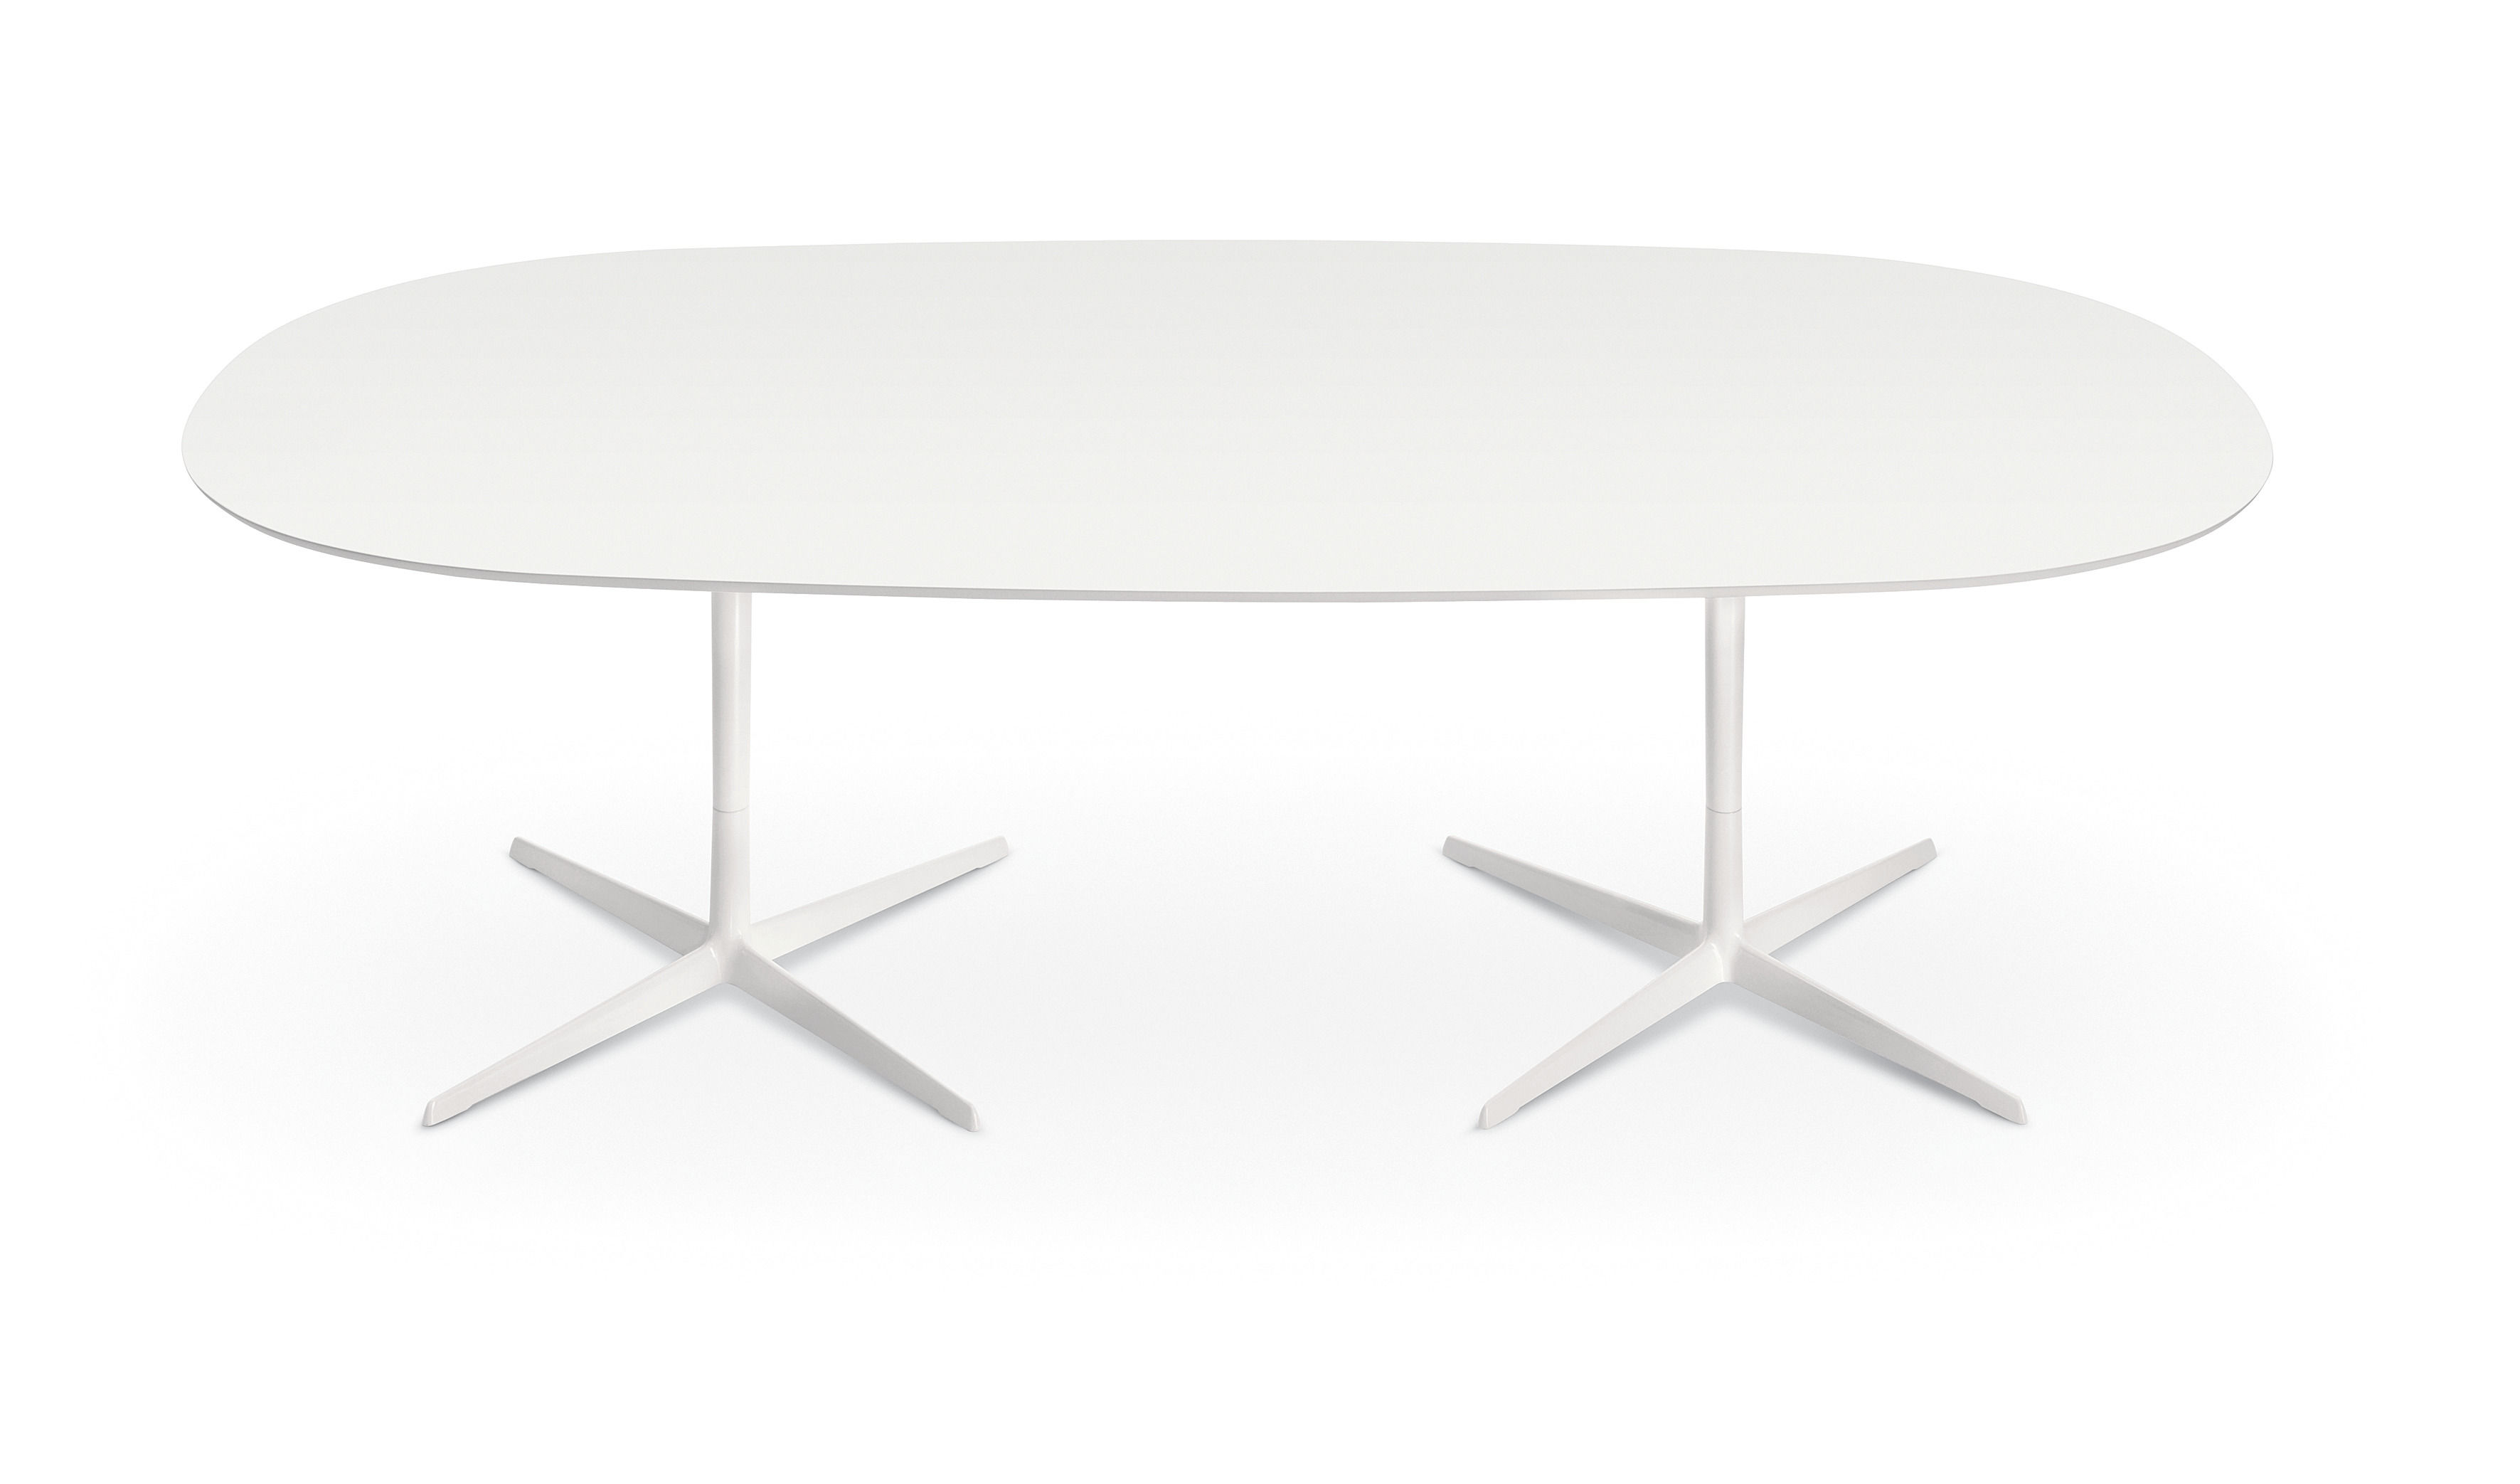 Eolo Table Stylecraft Meeting Table Dining